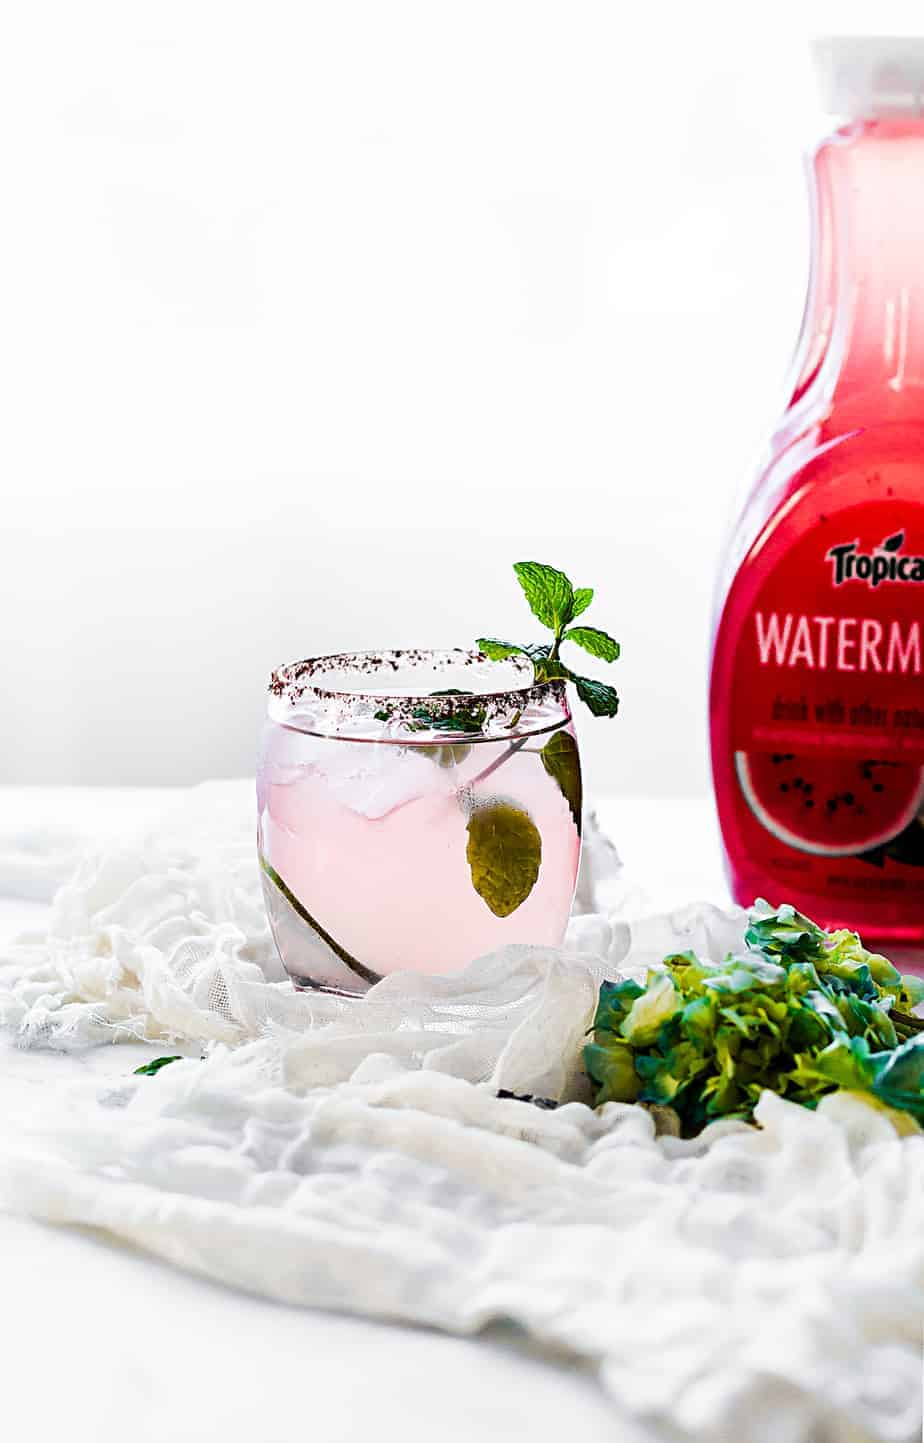 kickin' watermelon margarita with Tropicana Watermelon juice